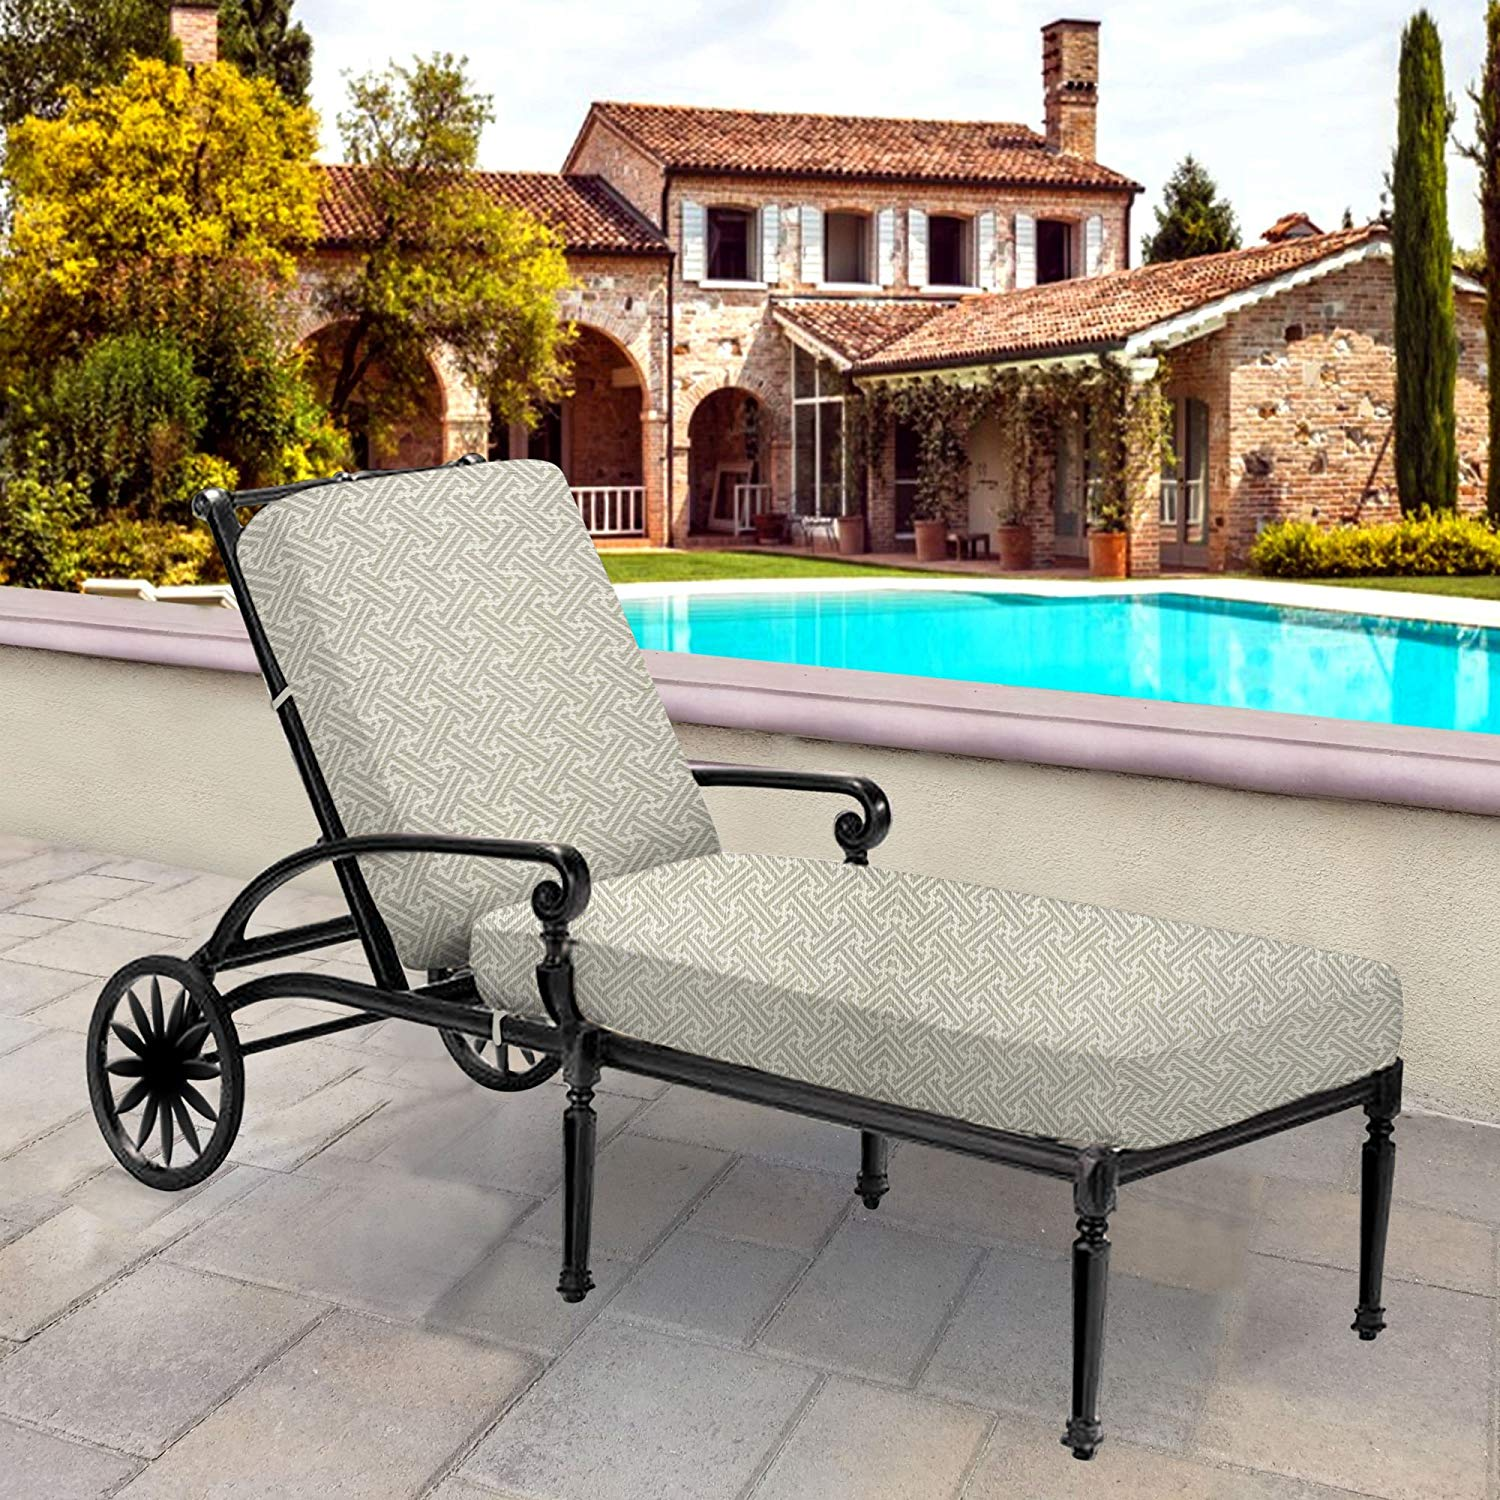 Thomas Collection Outdoor Cushions, Gray Ivory Patio Cushions, One Large Outdoor Chaise Seat & Back Cushion, Made in US, 13071